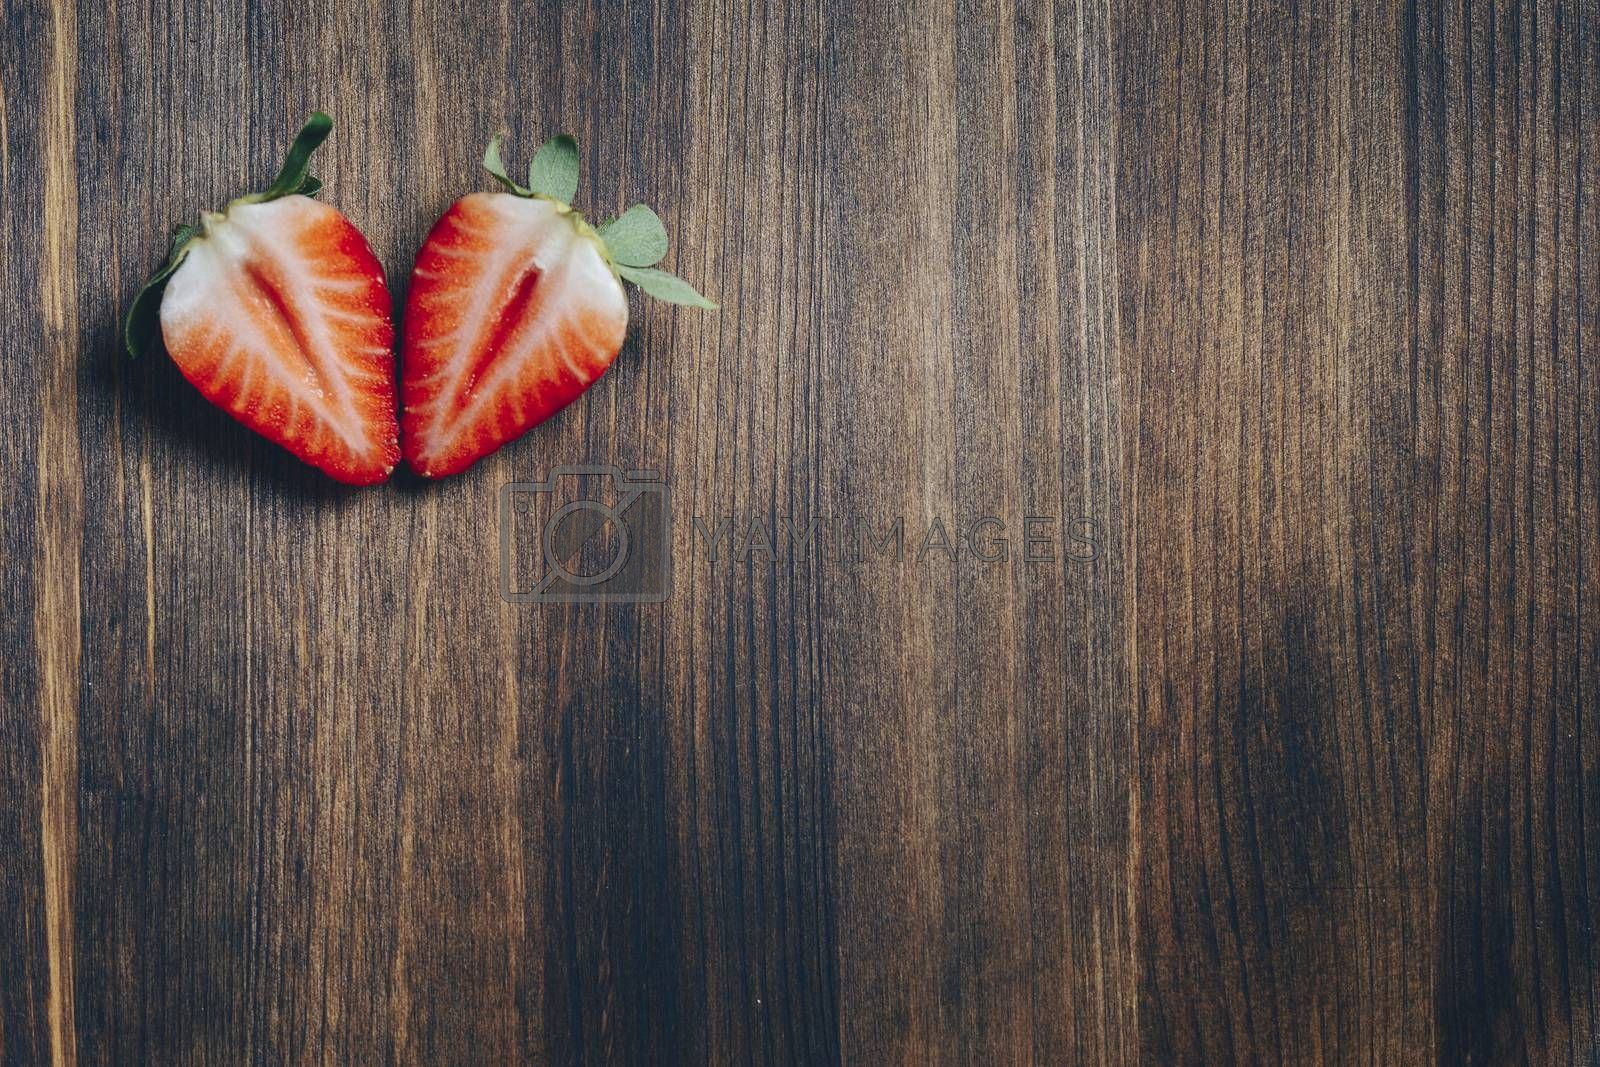 couple strawberry slice cut in half on wooden table in rustic style, healthy sweet food, vitamins and fruity concept. Top view, copy space for text